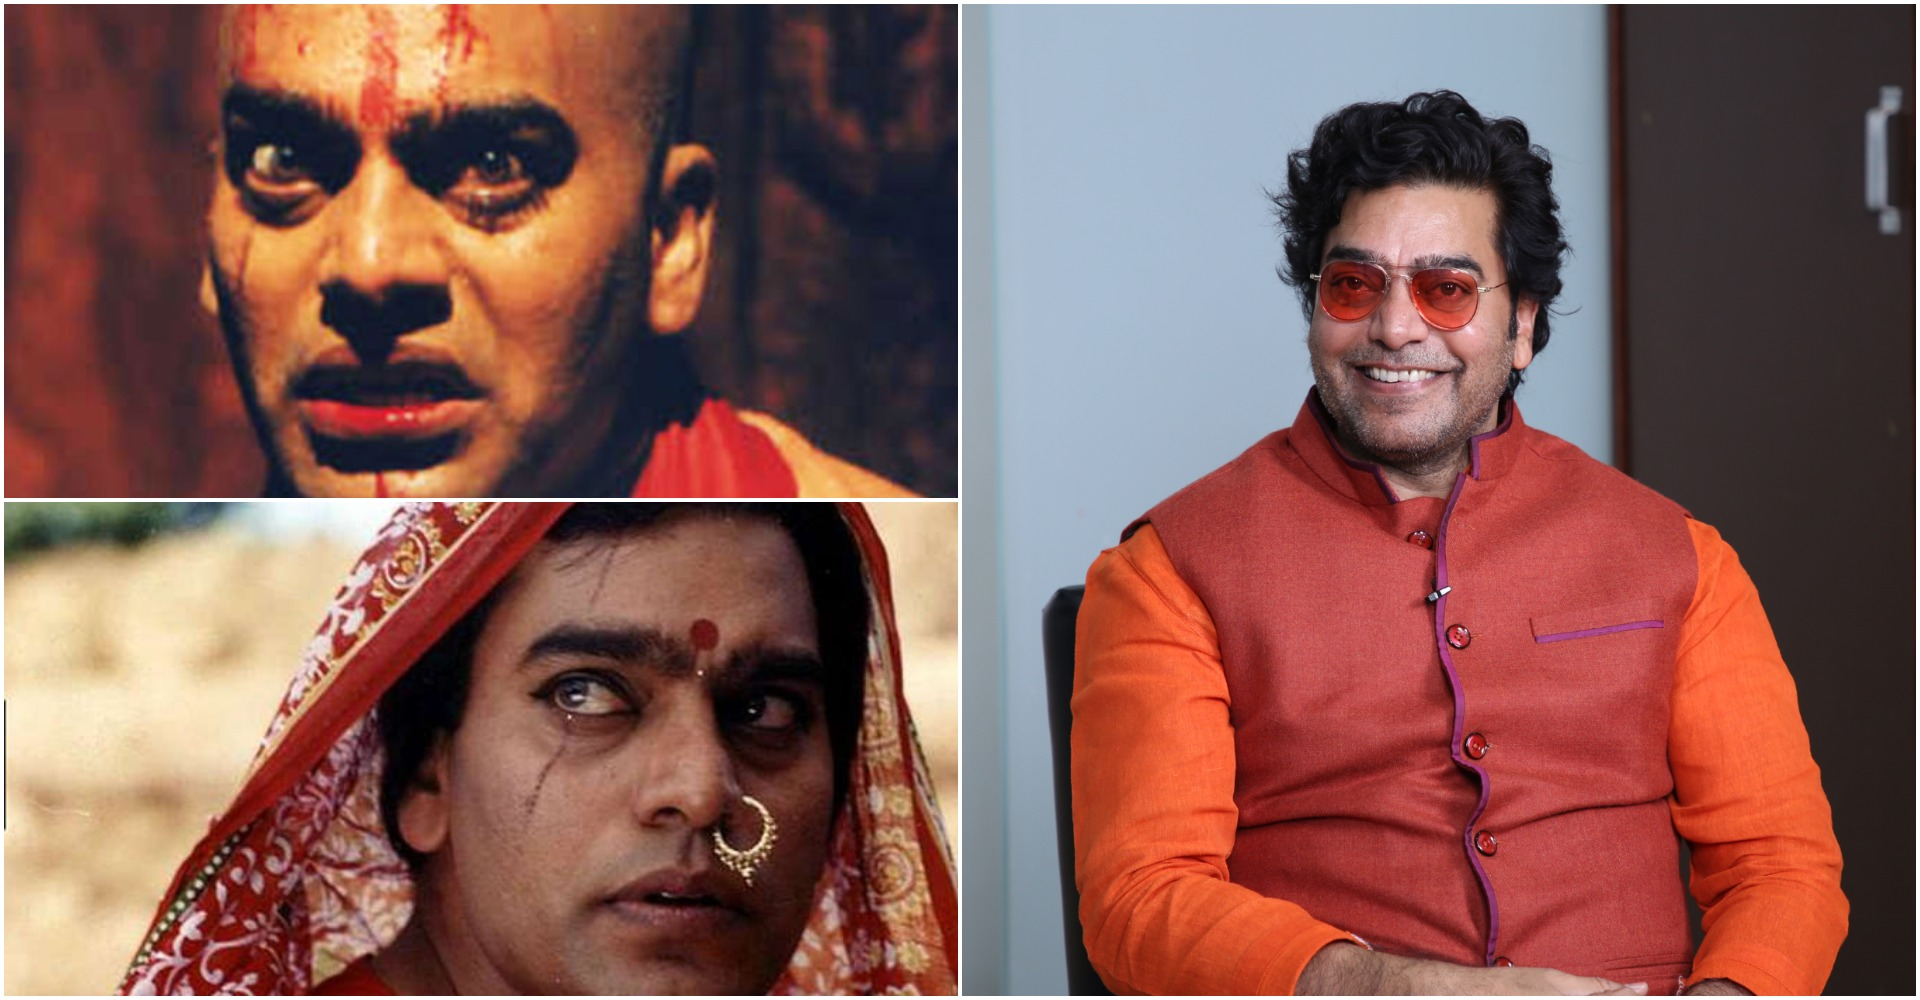 ajab-jankari-when-ashutosh-rana-was-carried-out-of-the-set-by-mahesh-bhatt